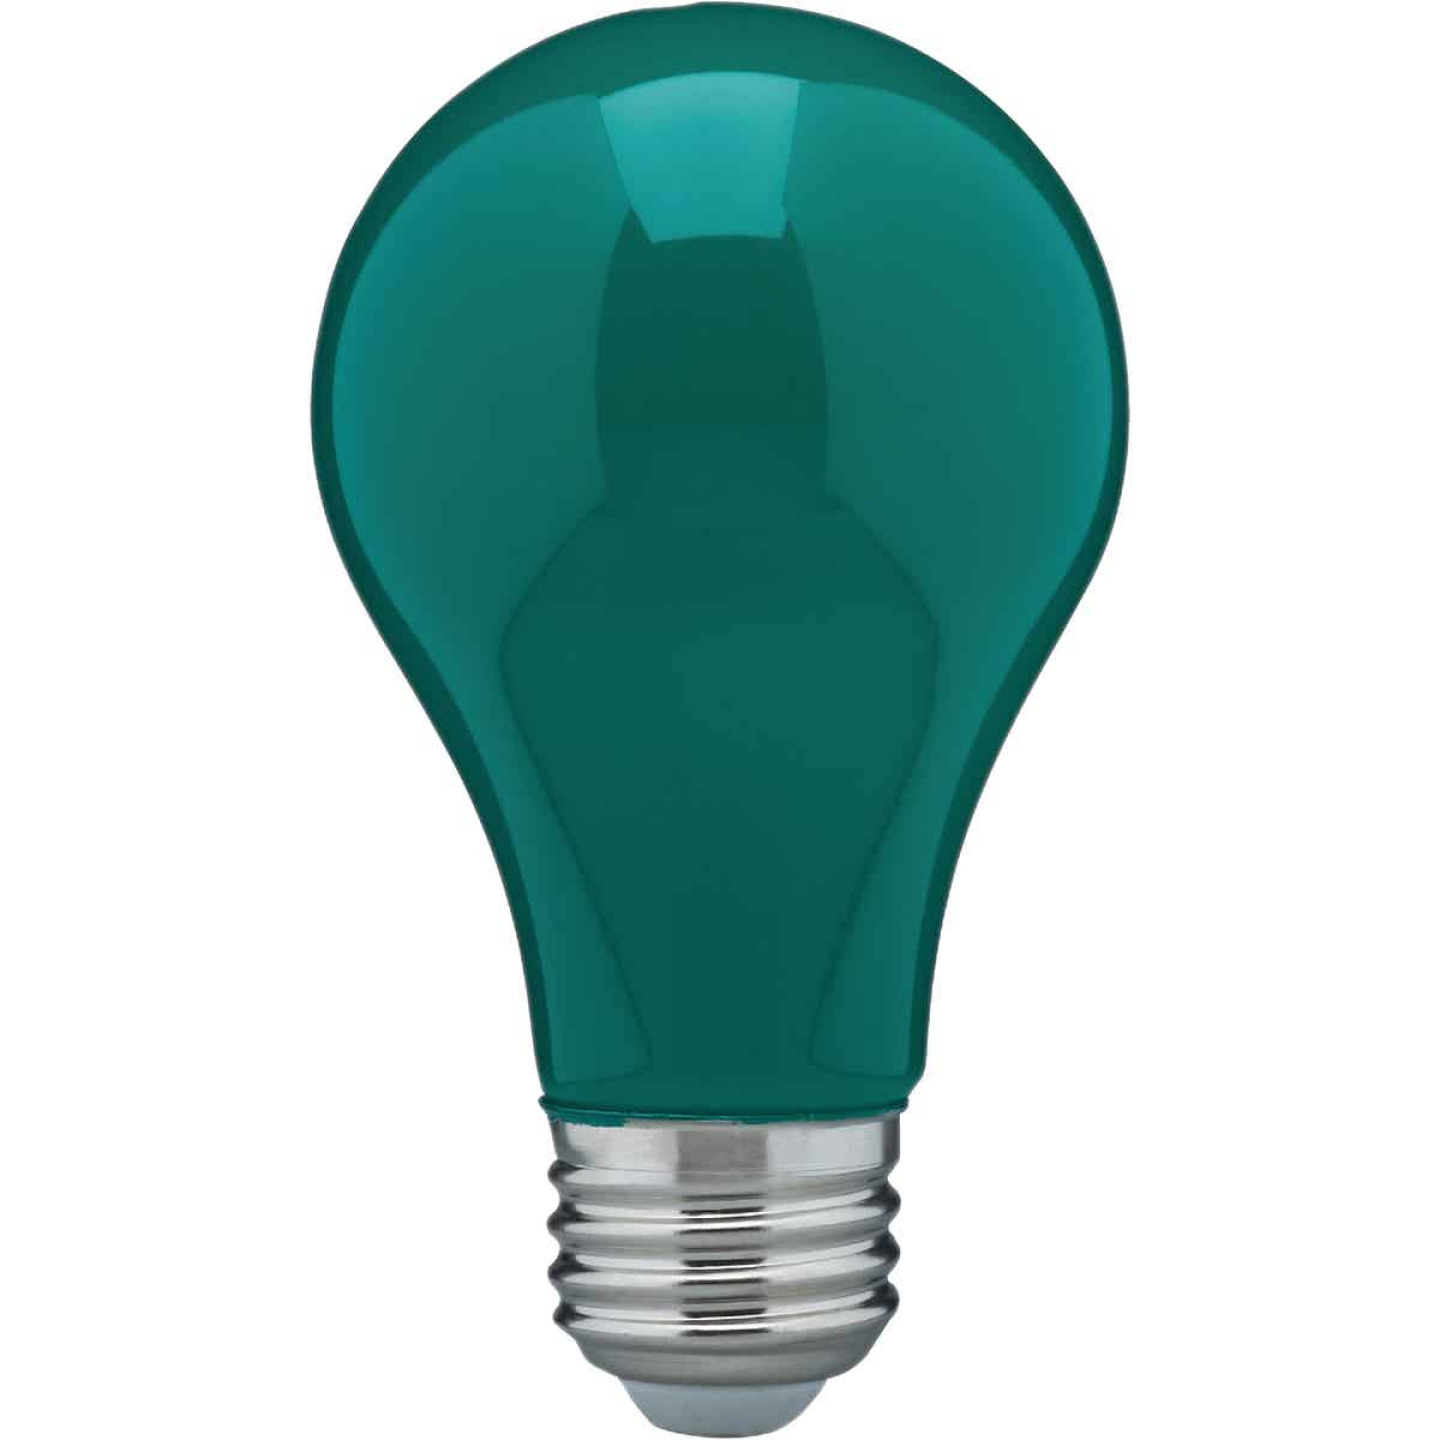 Satco Nuvo 60W Equivalent Green A19 Medium LED Party Light Bulb Image 1